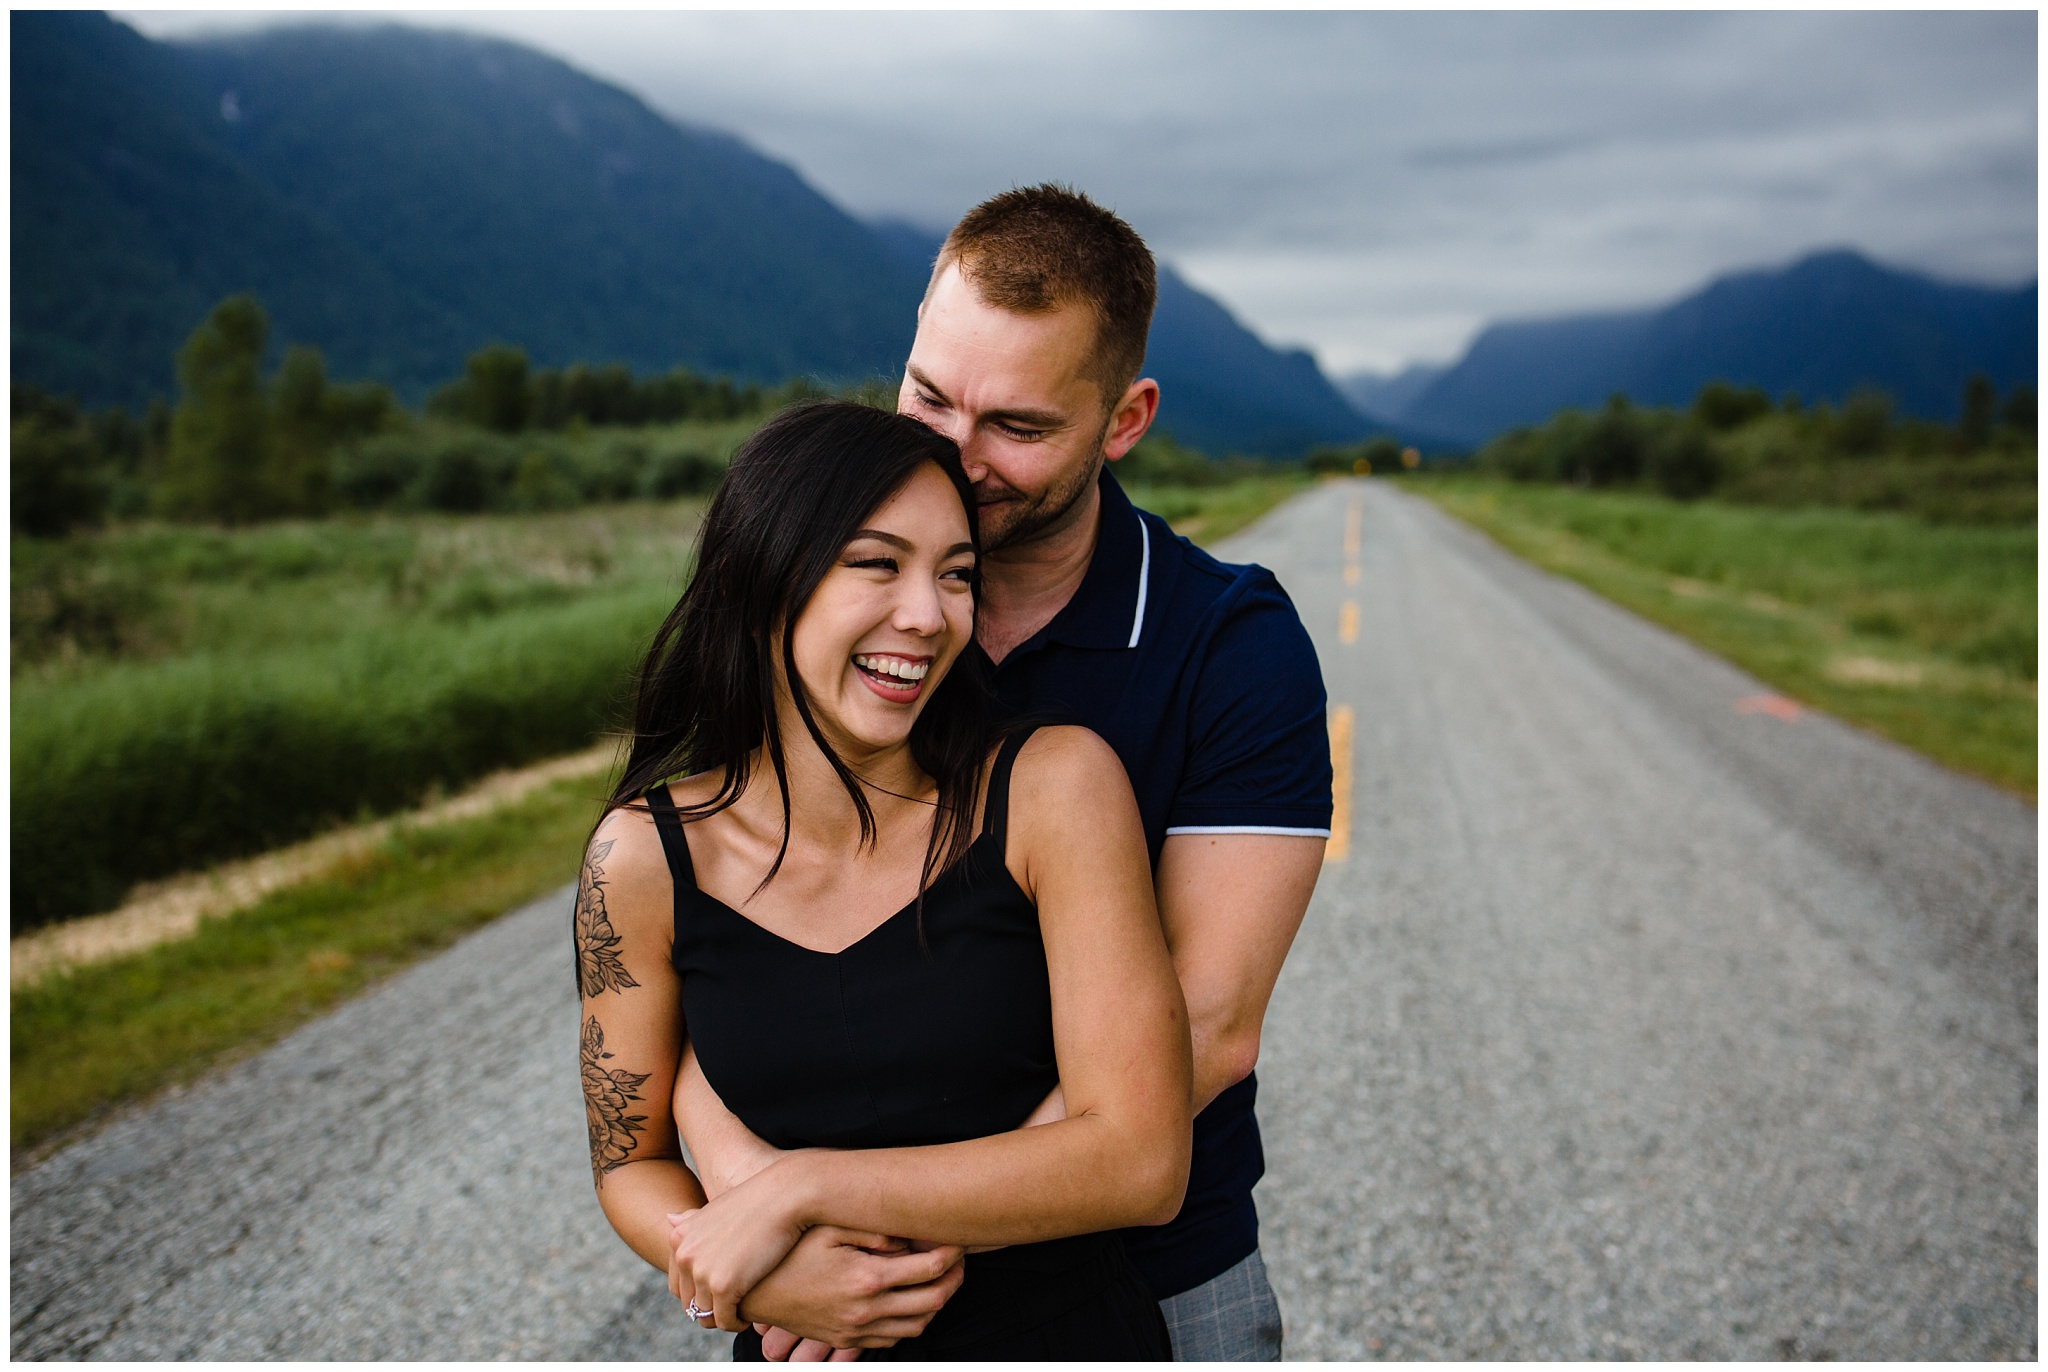 Pitt Lake Engagement Photos Maple Ridge Candid Fun Romantic Couples Photography_0016.jpg